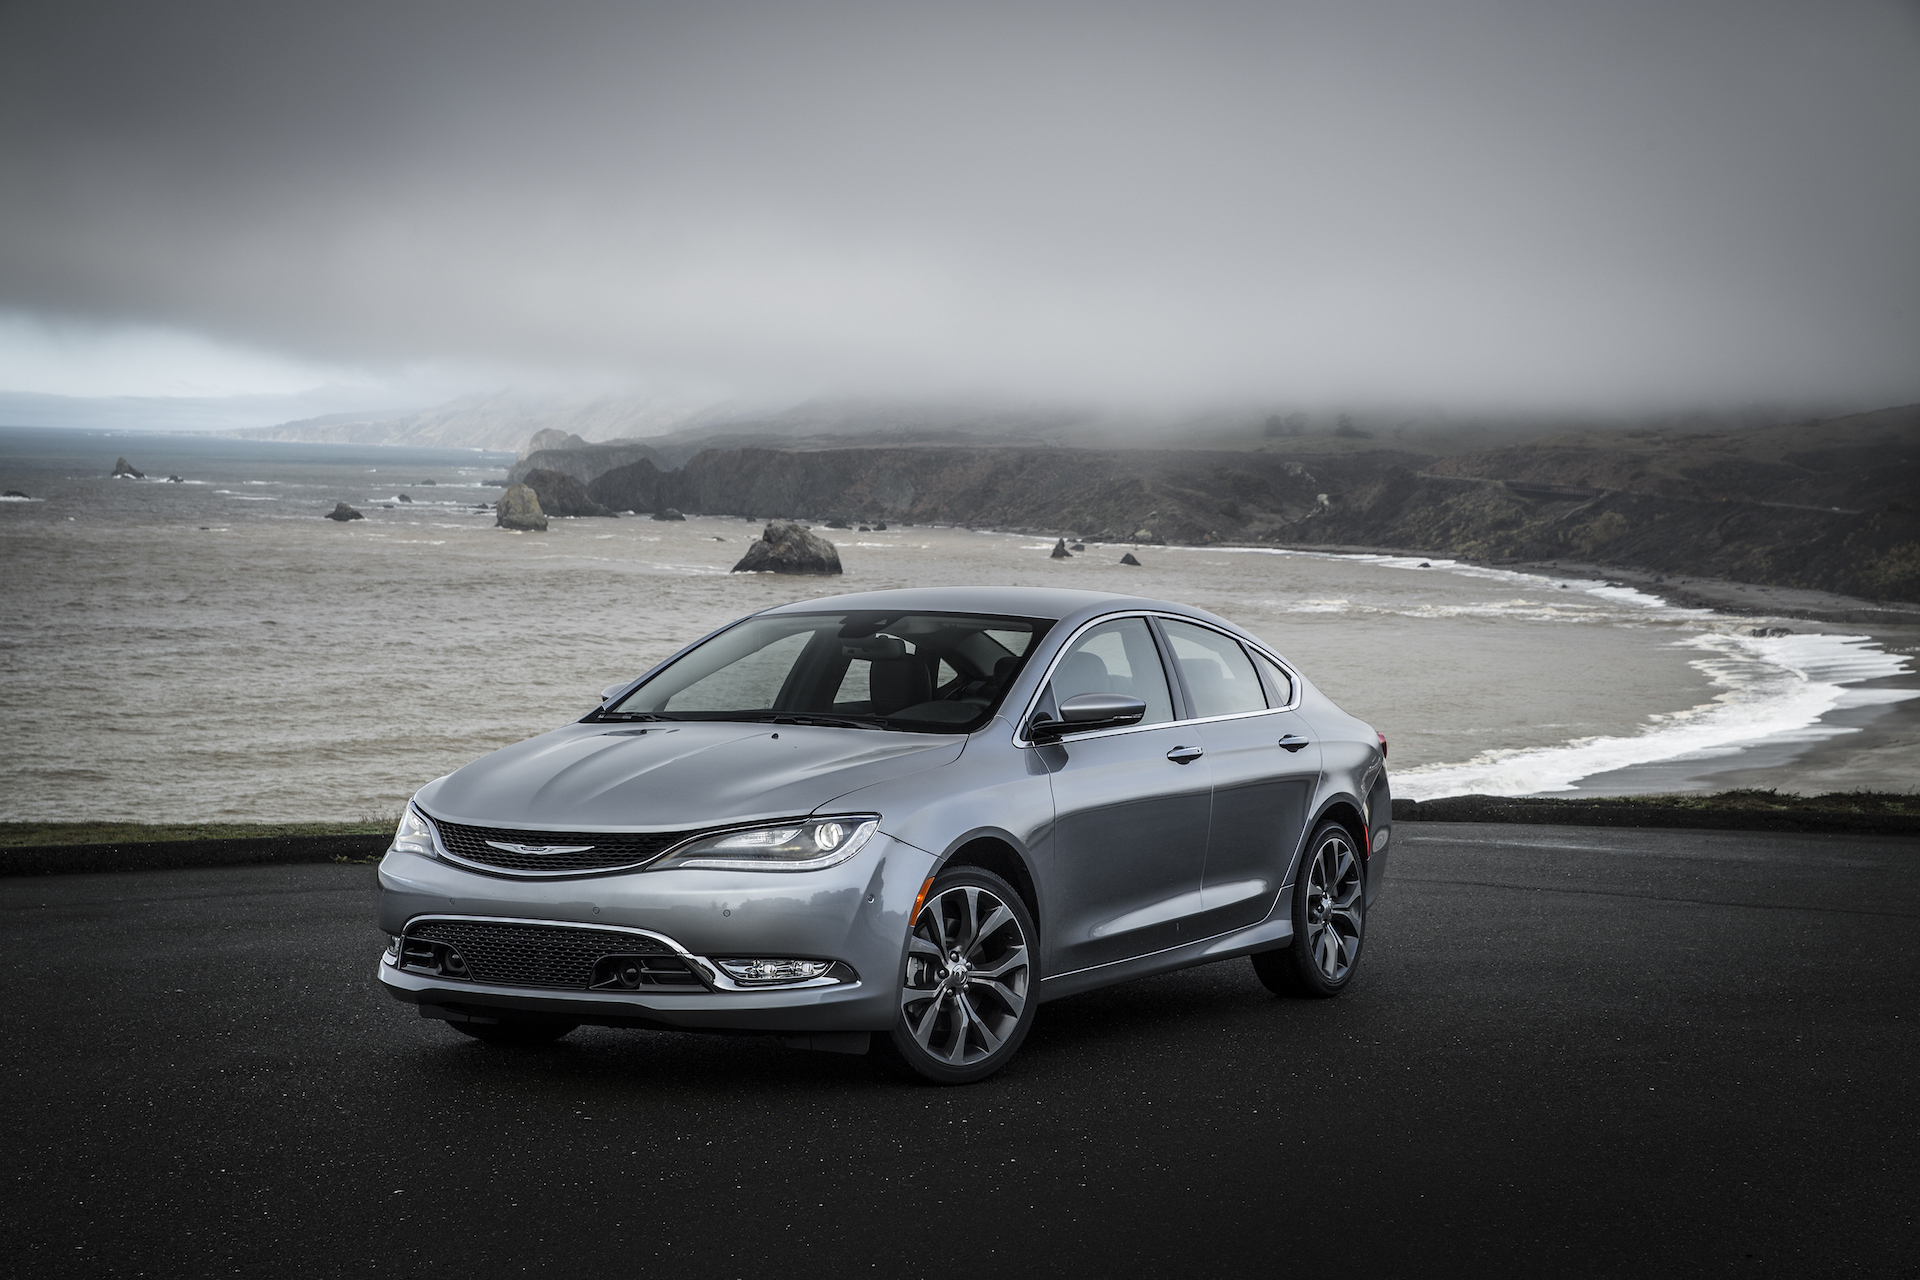 2017 chrysler 200 styling review the car connection. Black Bedroom Furniture Sets. Home Design Ideas